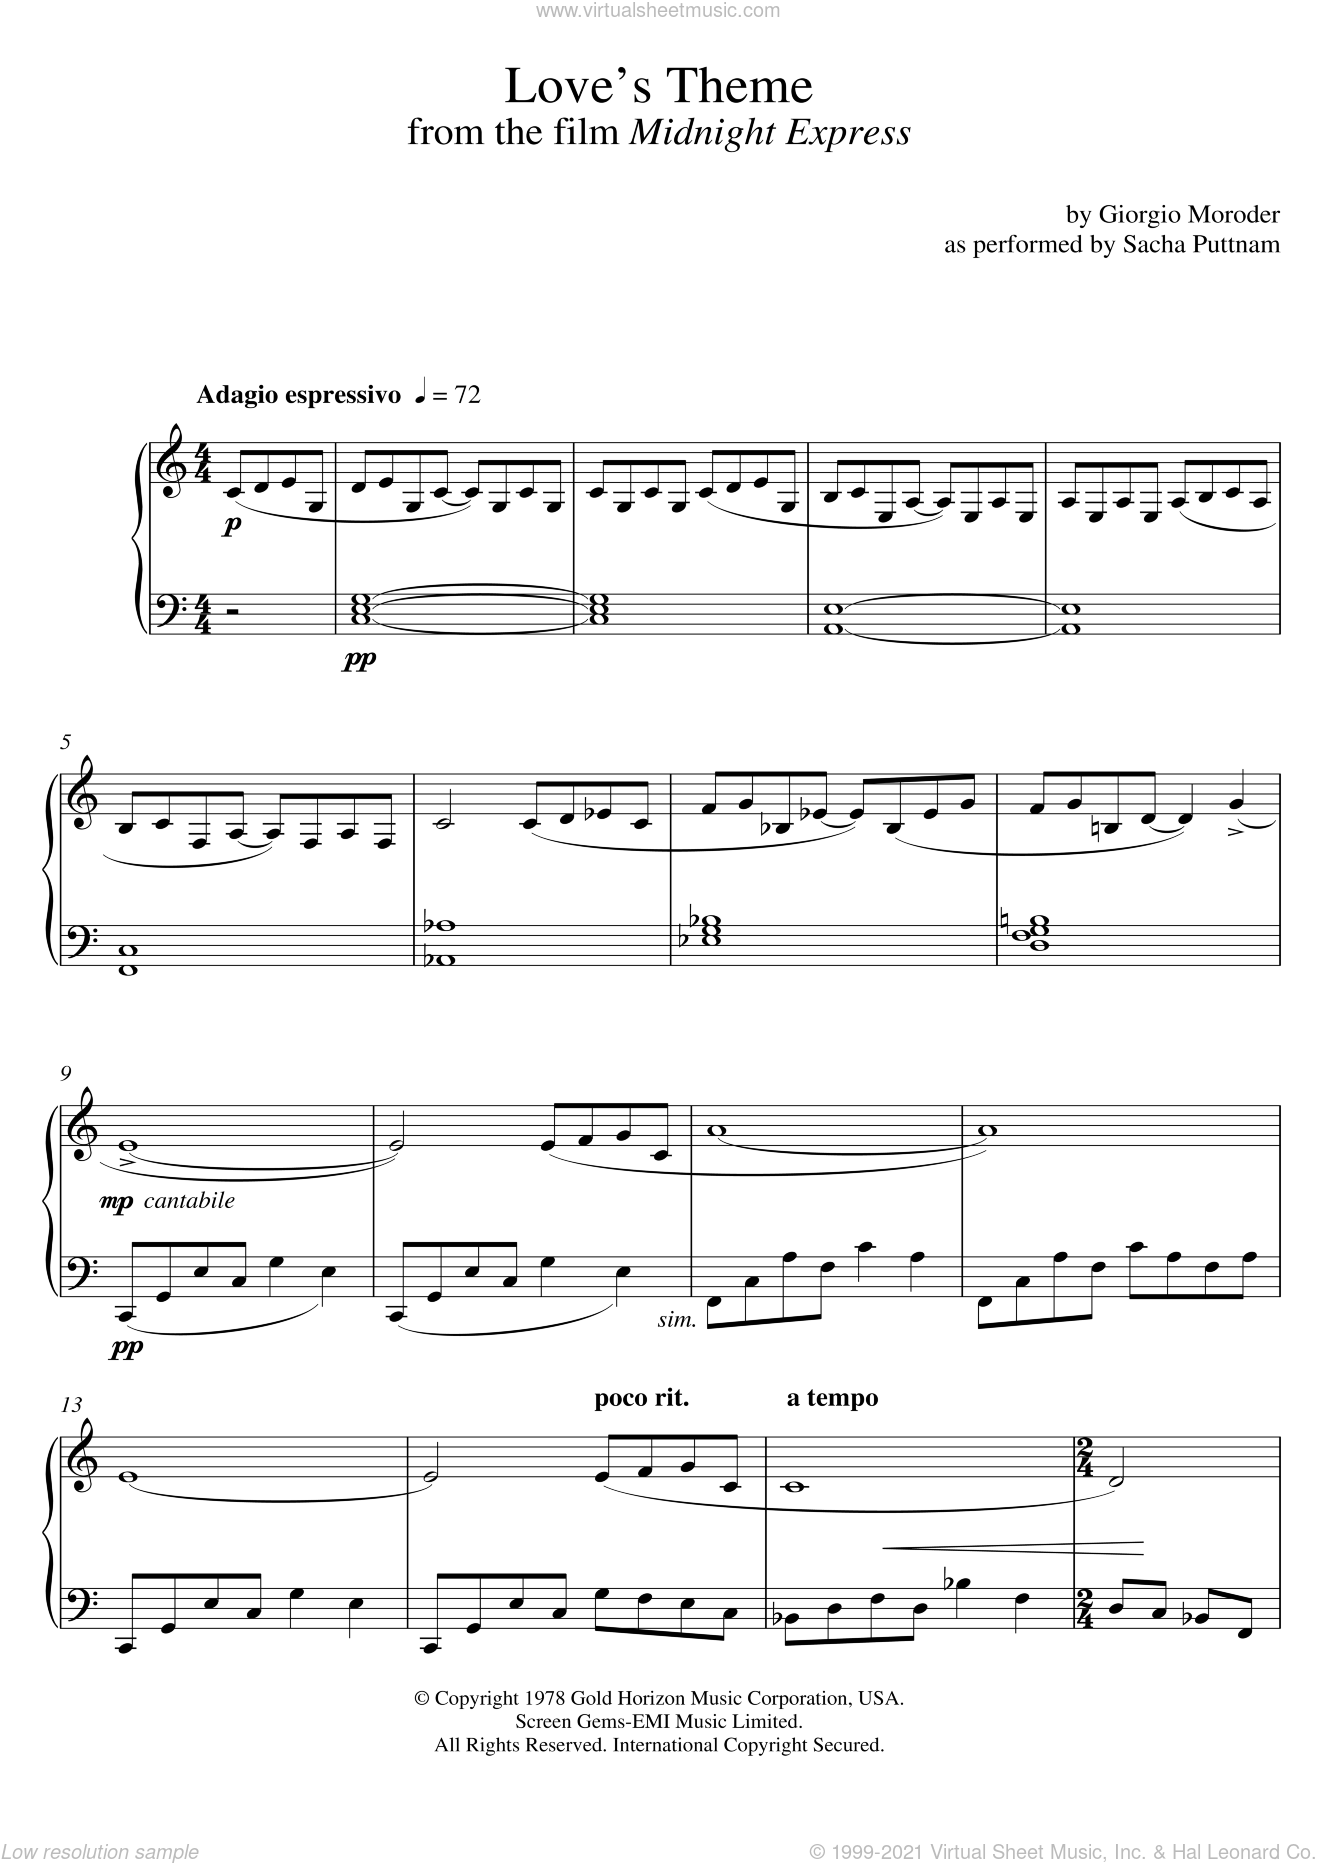 Love's Theme (from Midnight Express) (as performed by Sacha Puttnam) sheet music for piano solo by Giorgio Moroder and Sacha Puttnam. Score Image Preview.